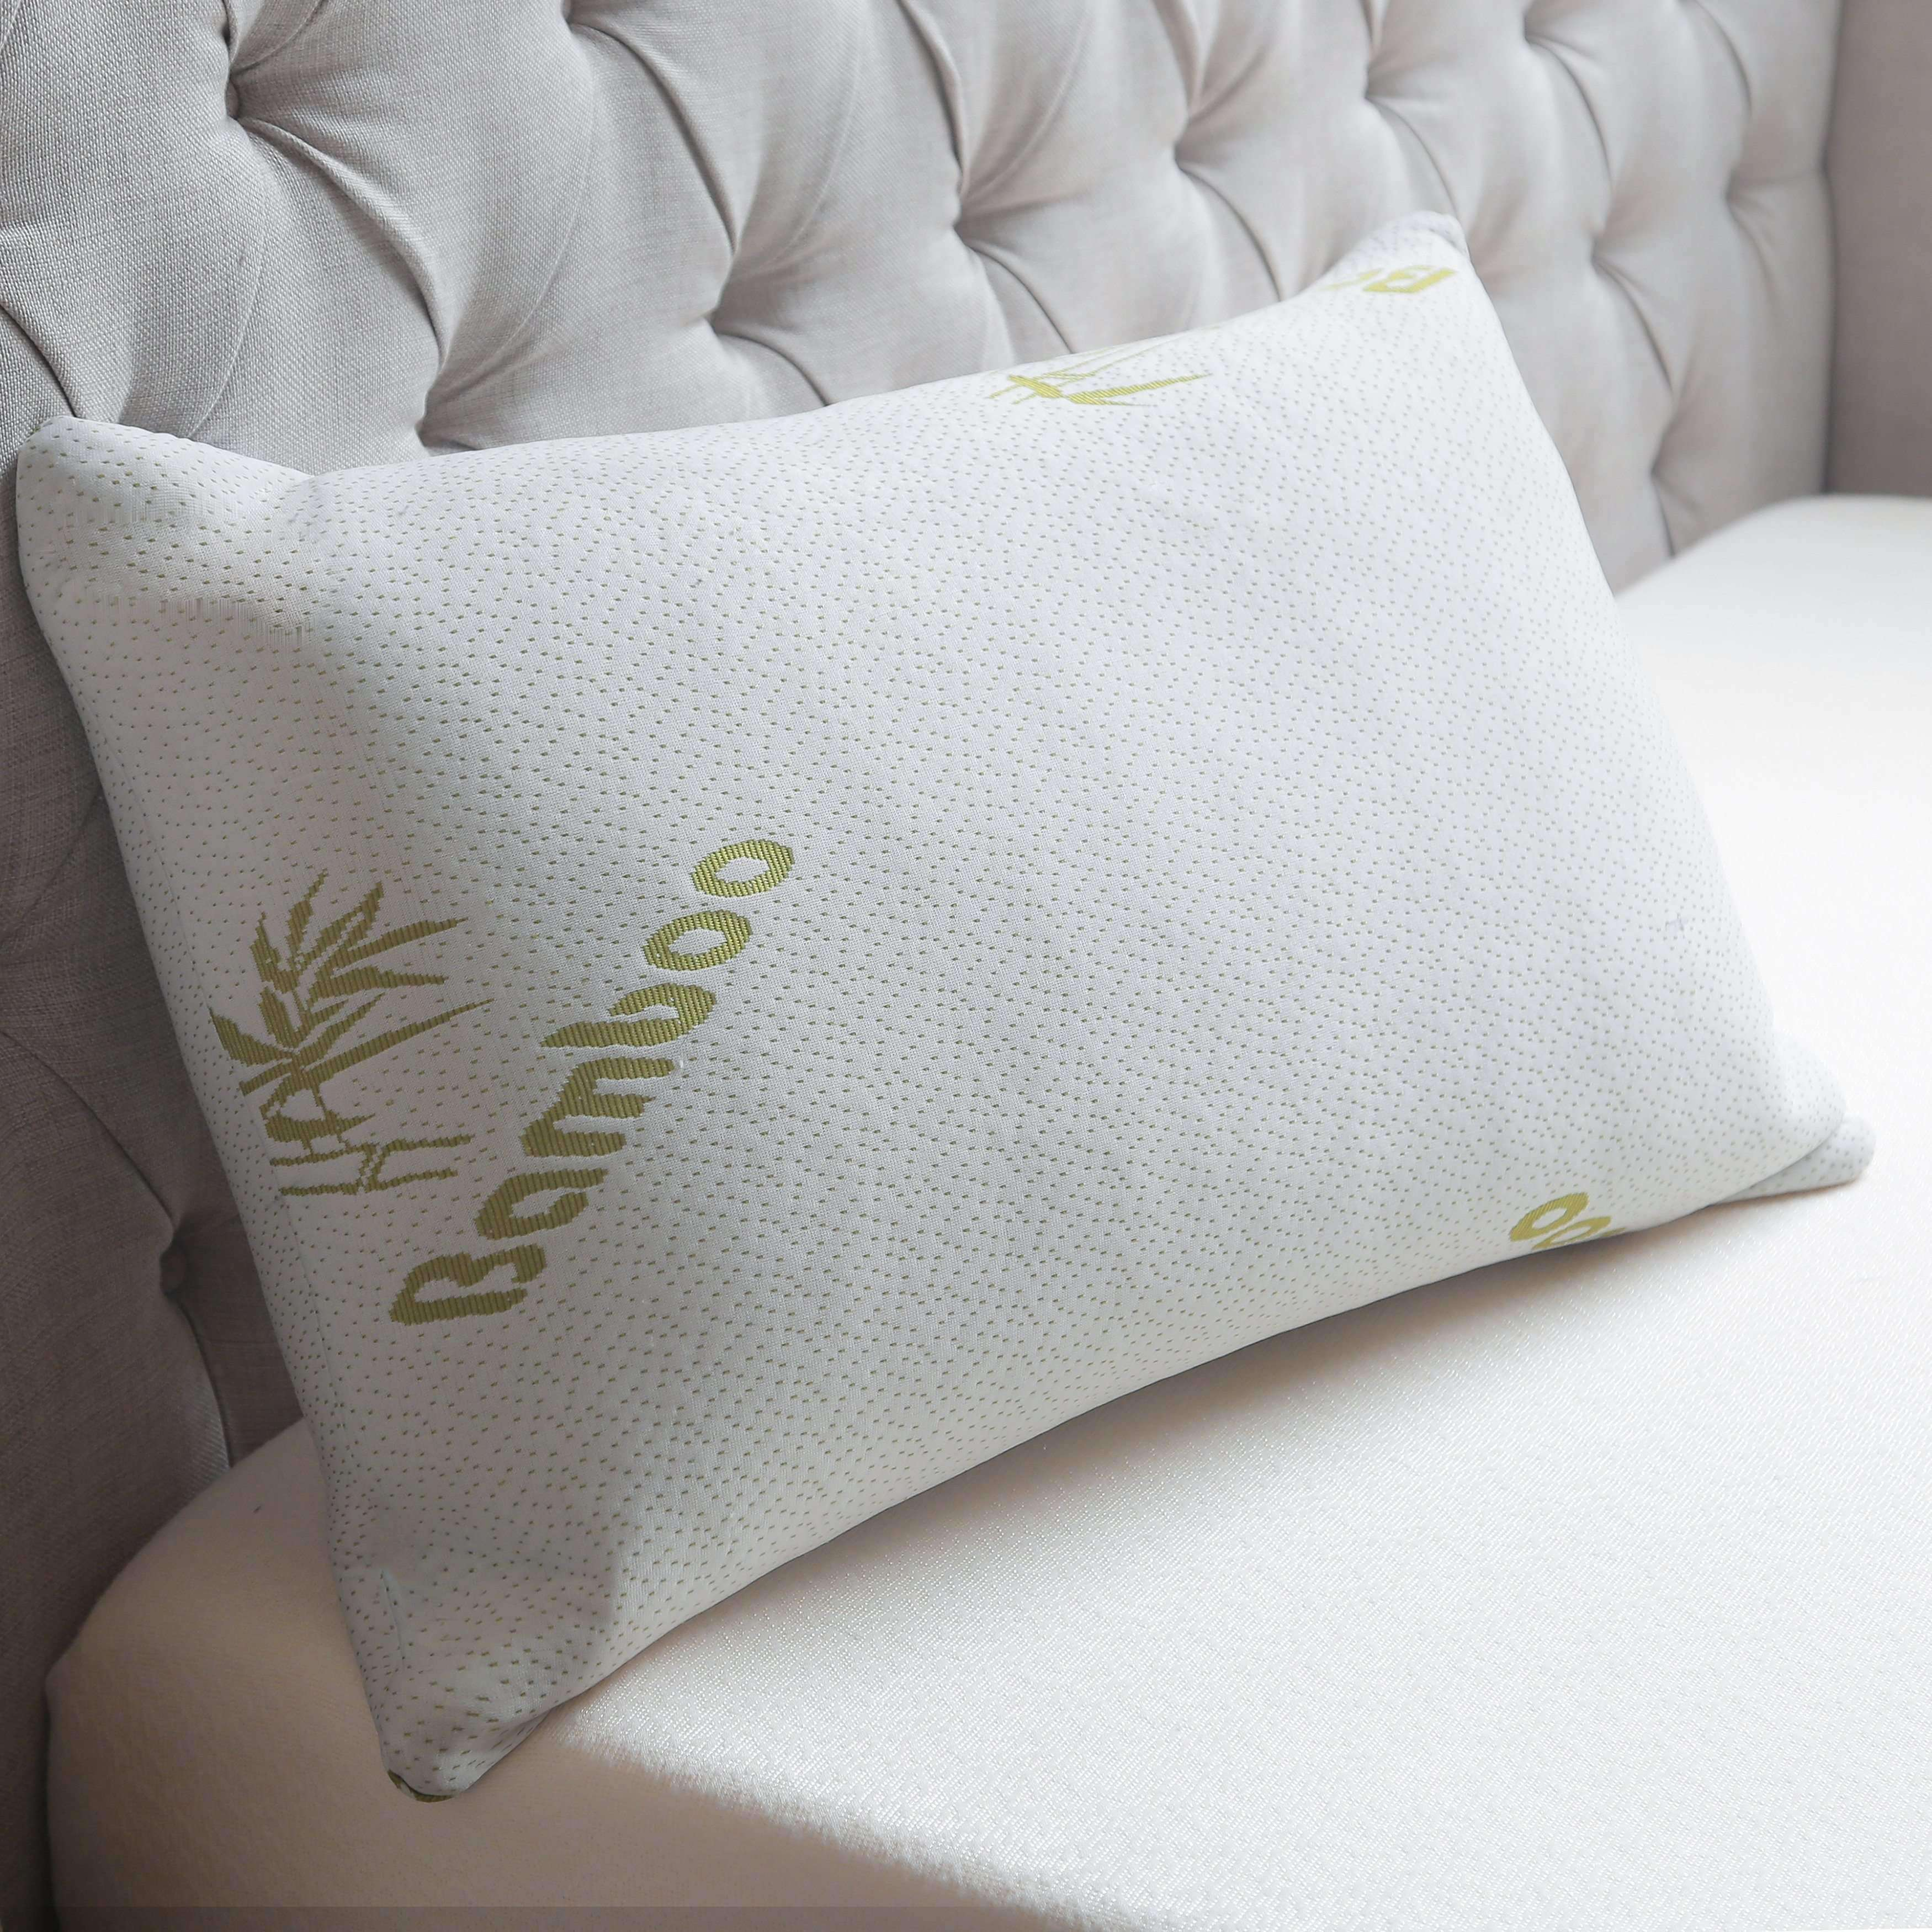 decor ribbon products product foam bamboo pillow blue collections trends memory image